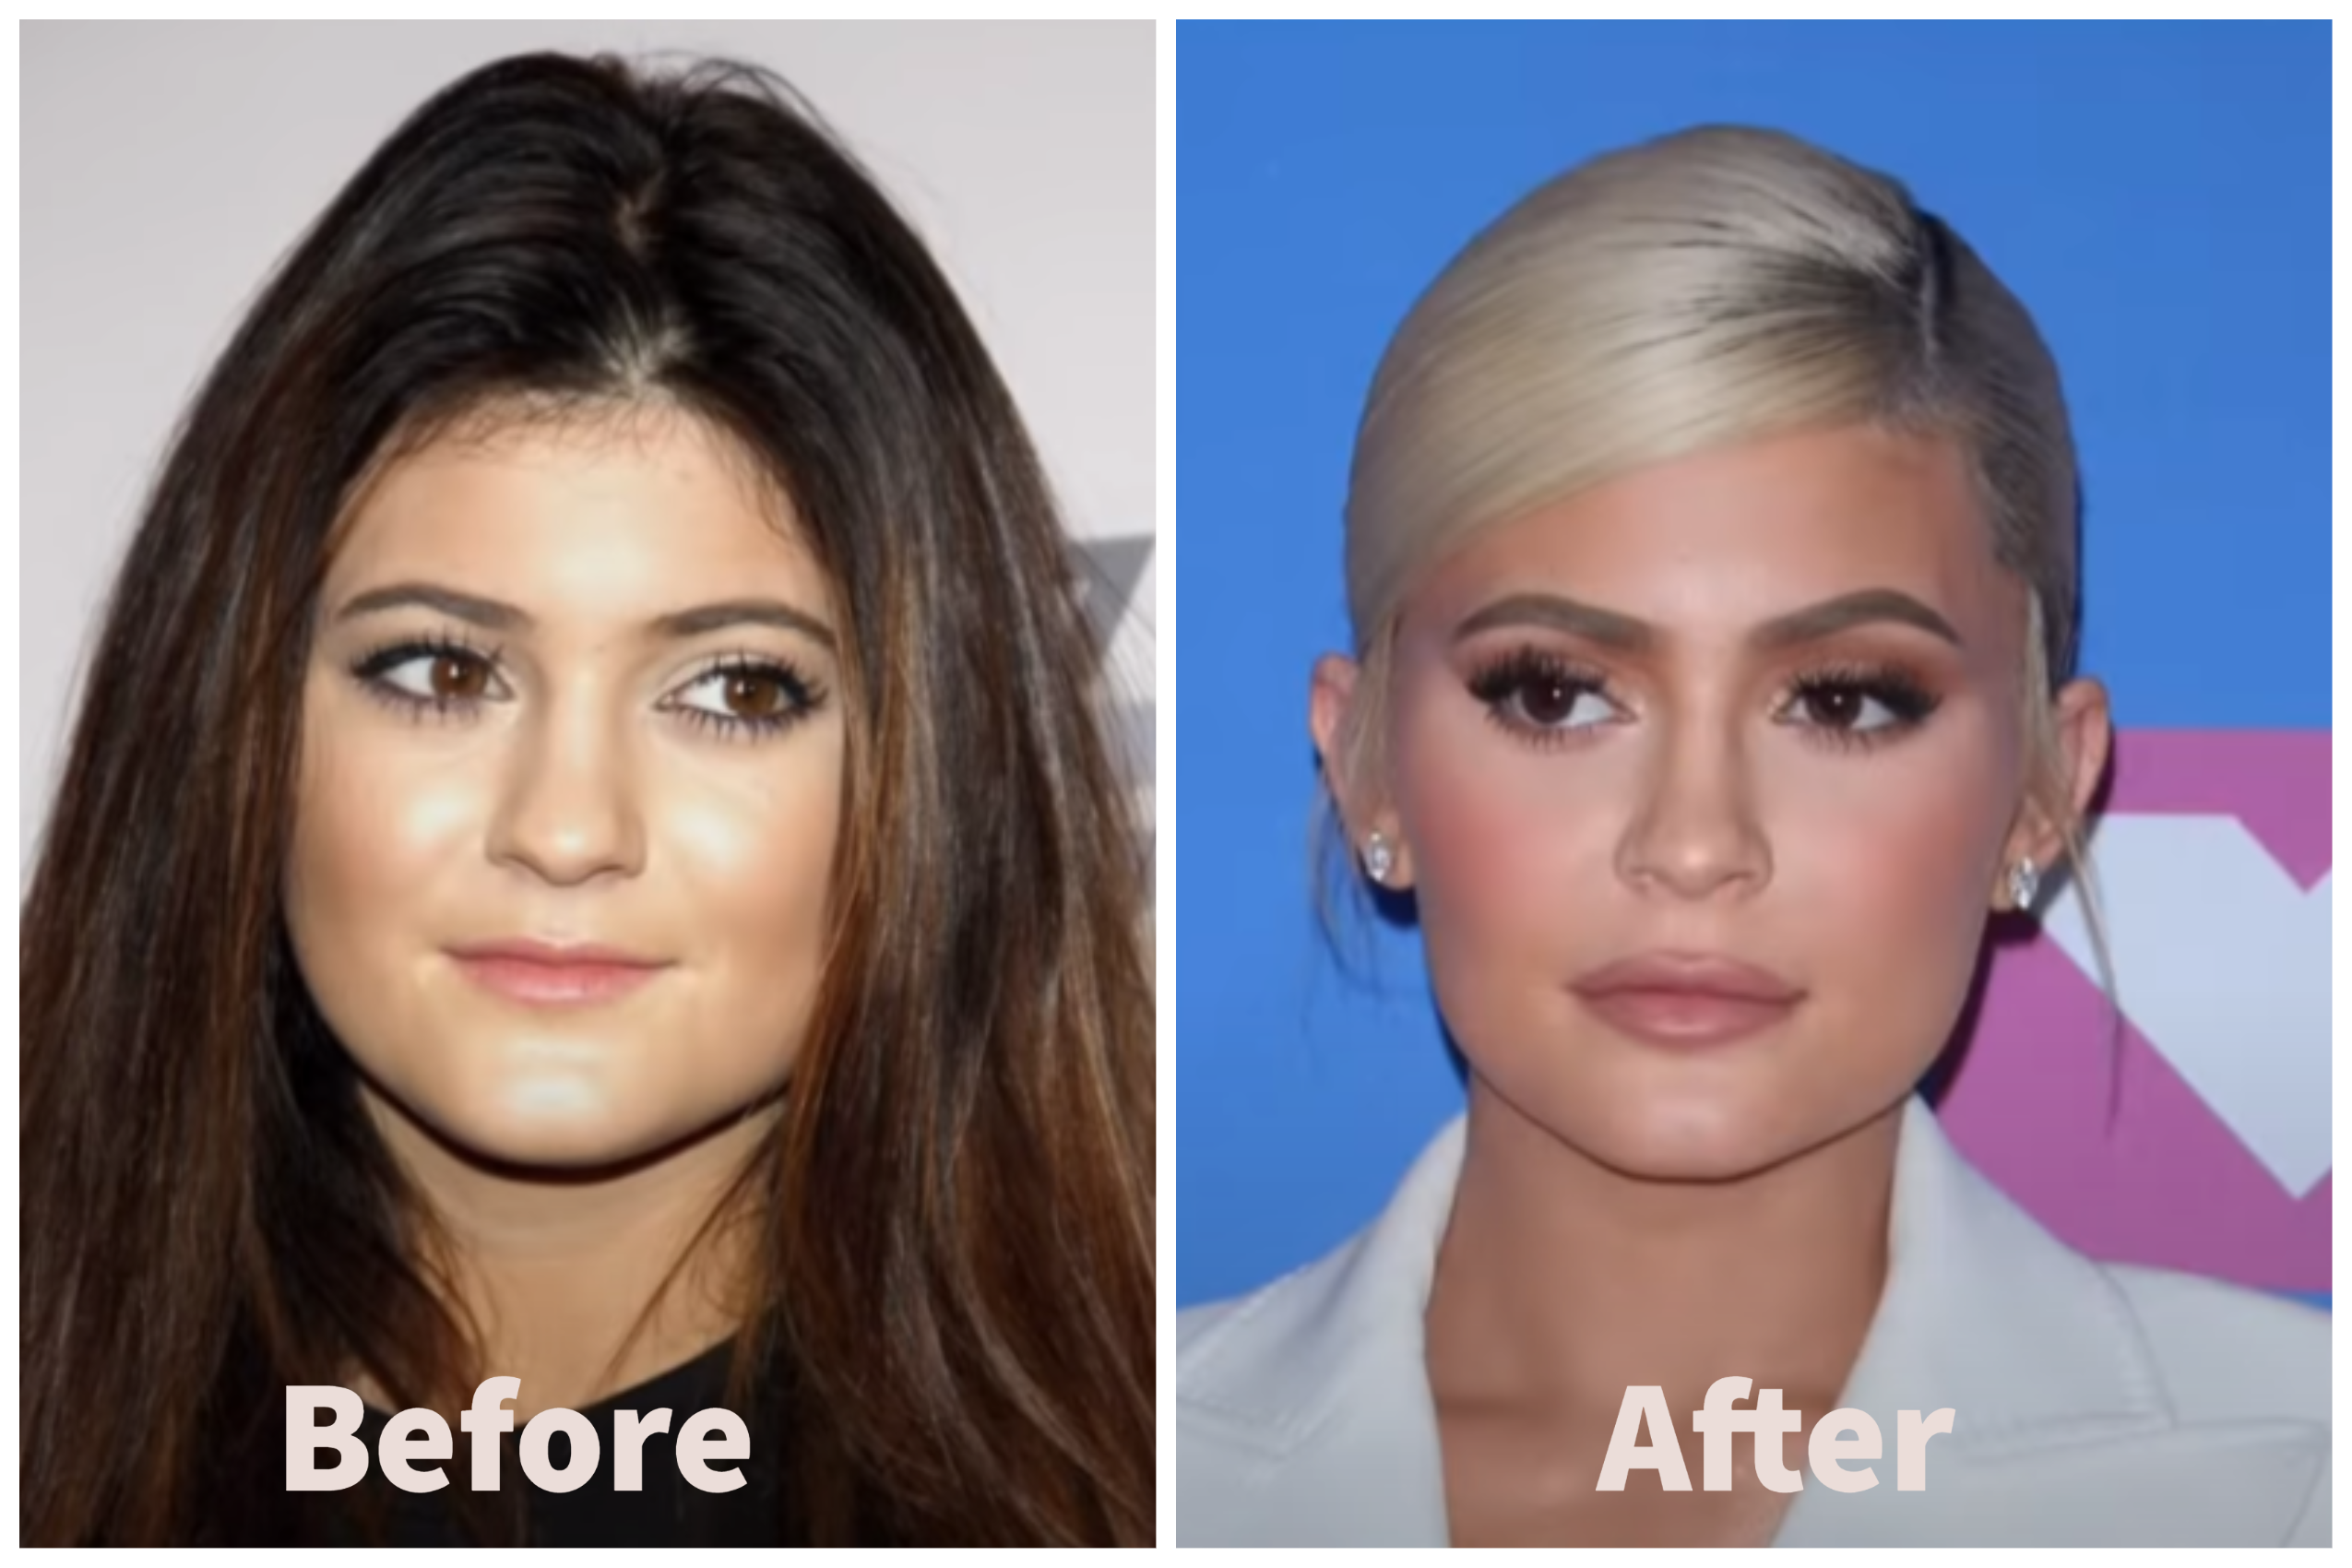 Kylie Jenner Before and After Plastic Surgery